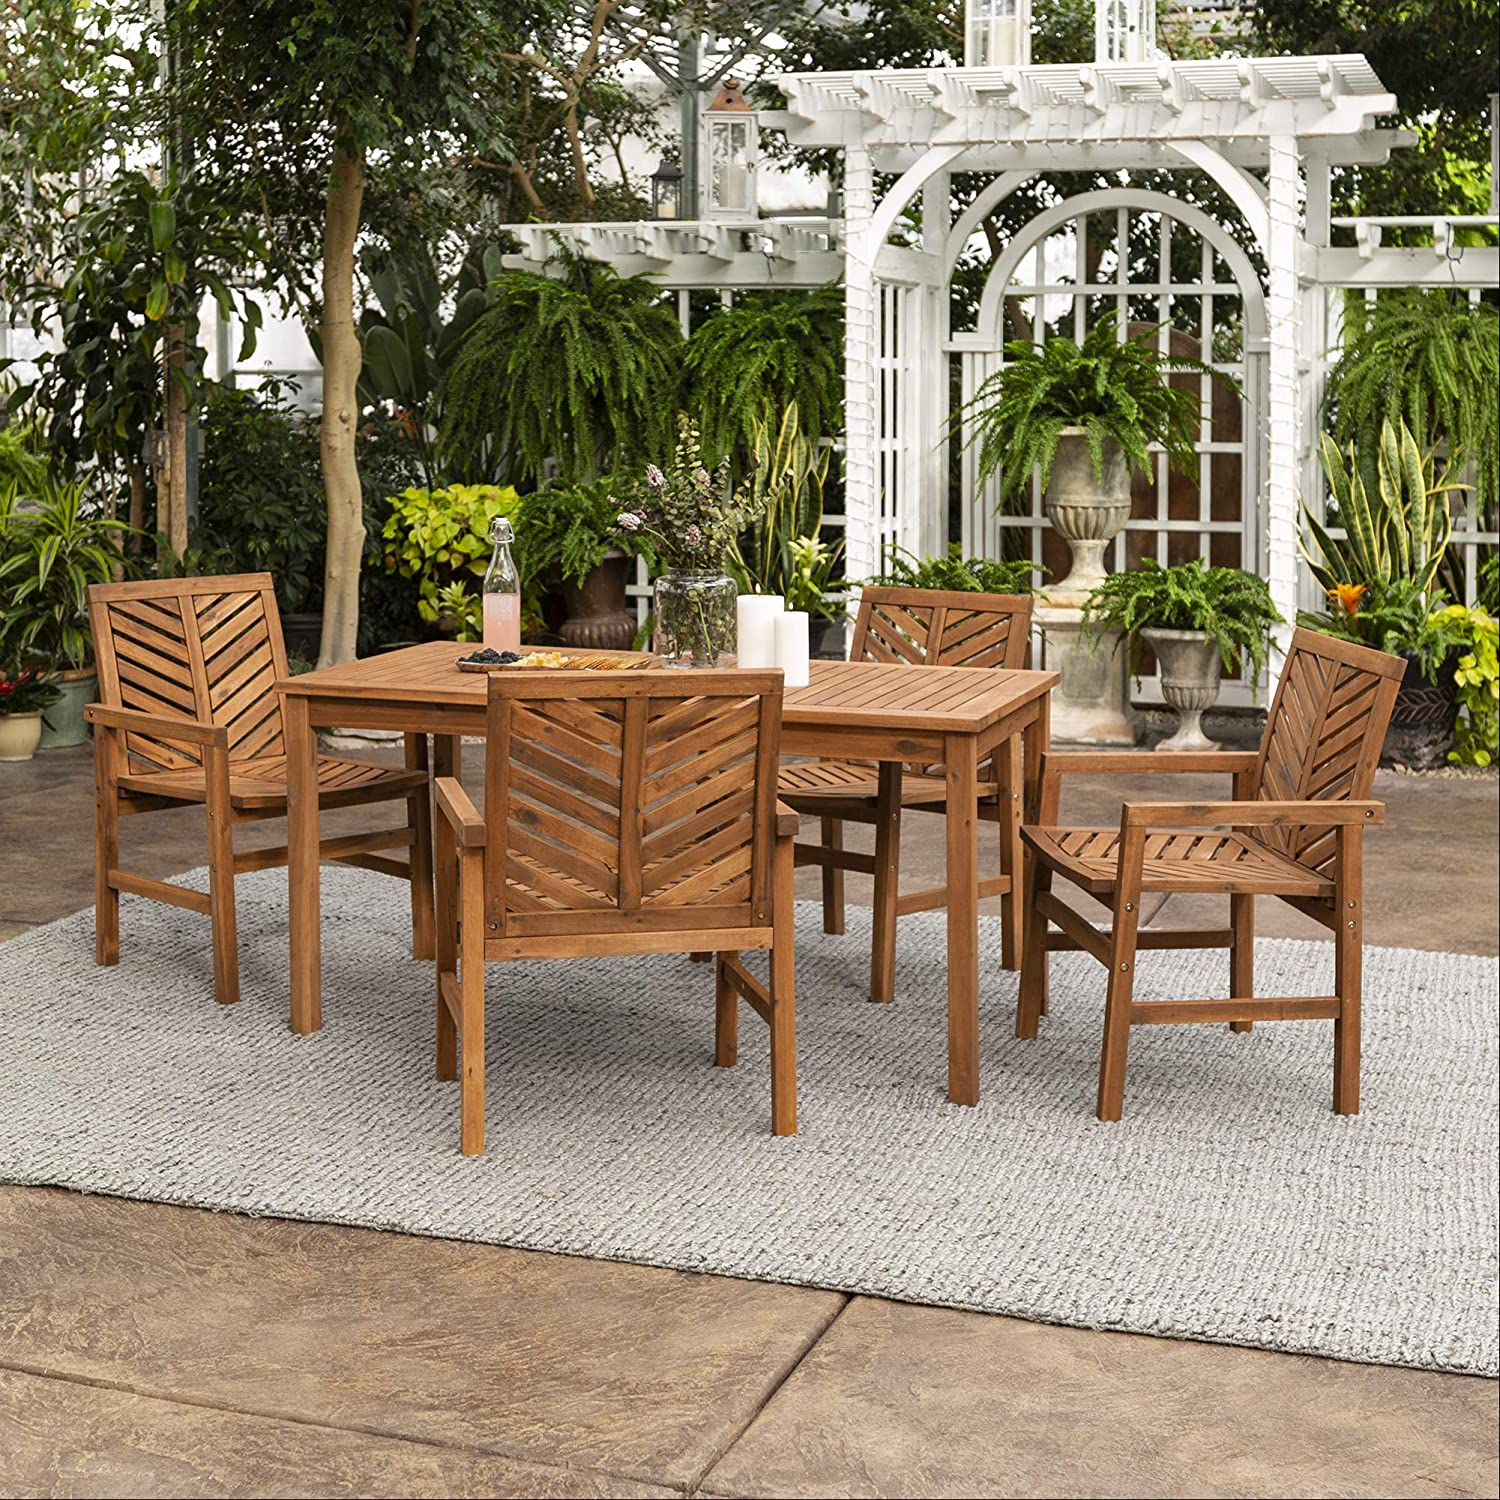 Walker Edison 4 Person Outdoor Wood Chevron Patio Furniture Dining Set Table Chairs All Weather Backyard Conversation Garden Poolside Balcony, 5 Piece, Brown